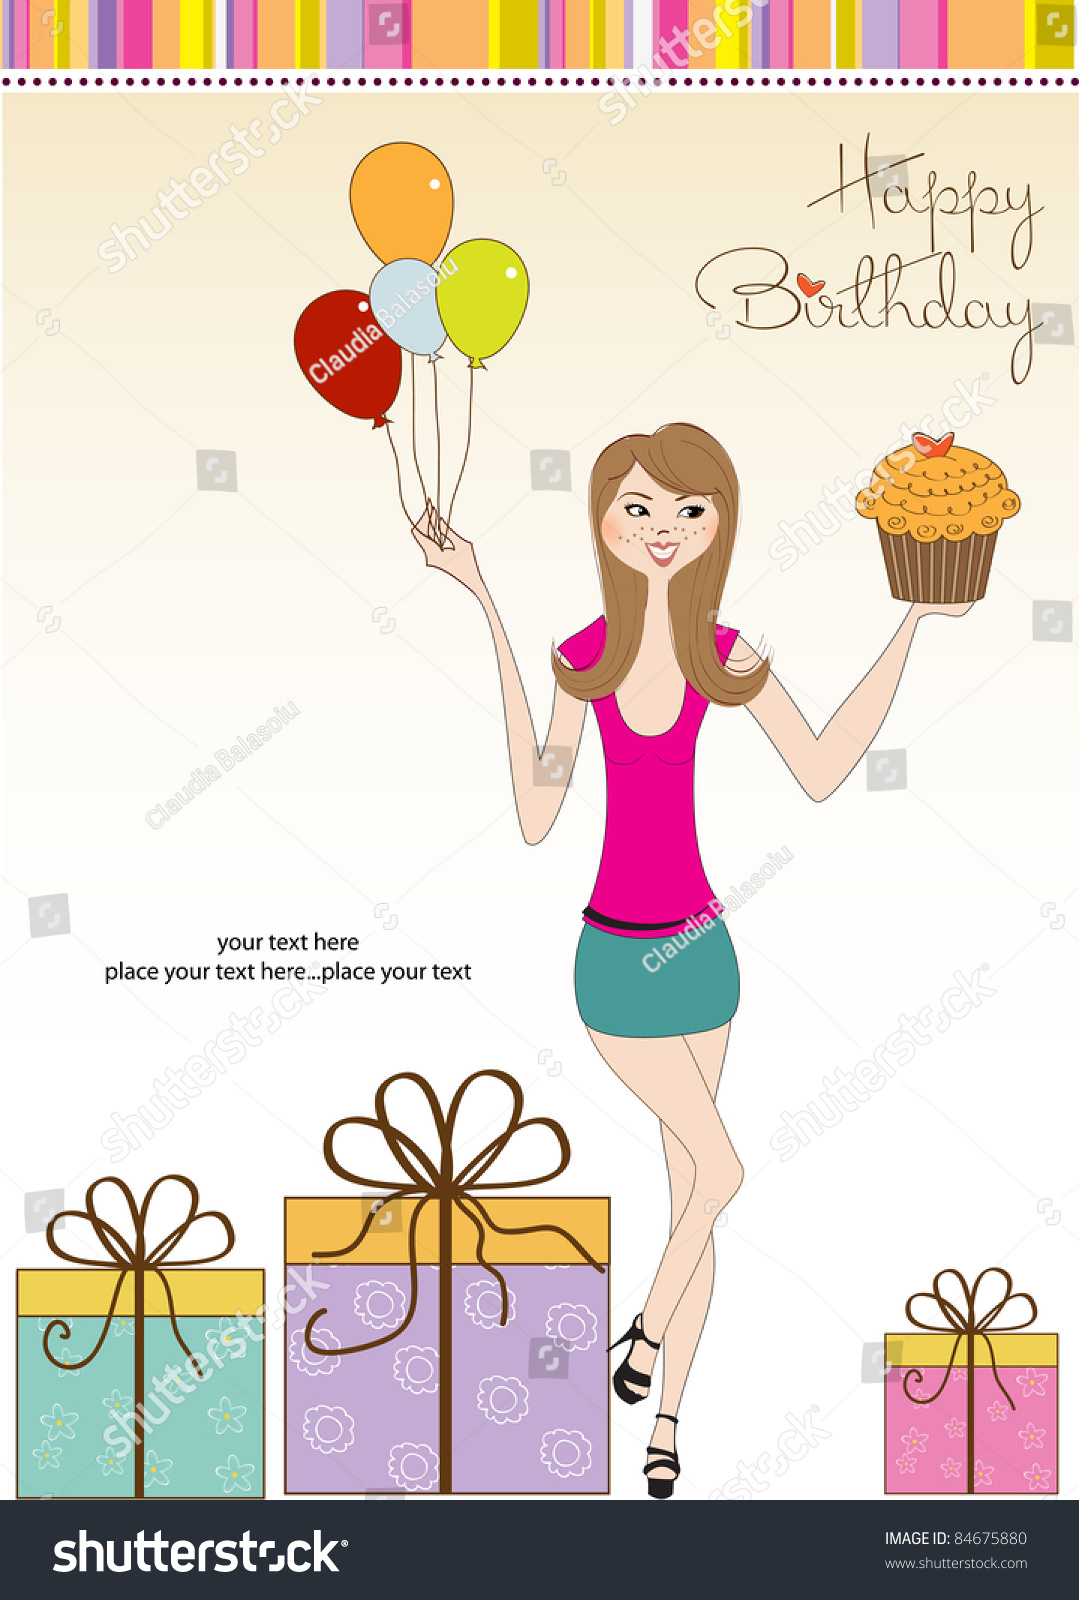 happy birthday young girl ; stock-vector-happy-birthday-card-with-young-girl-84675880